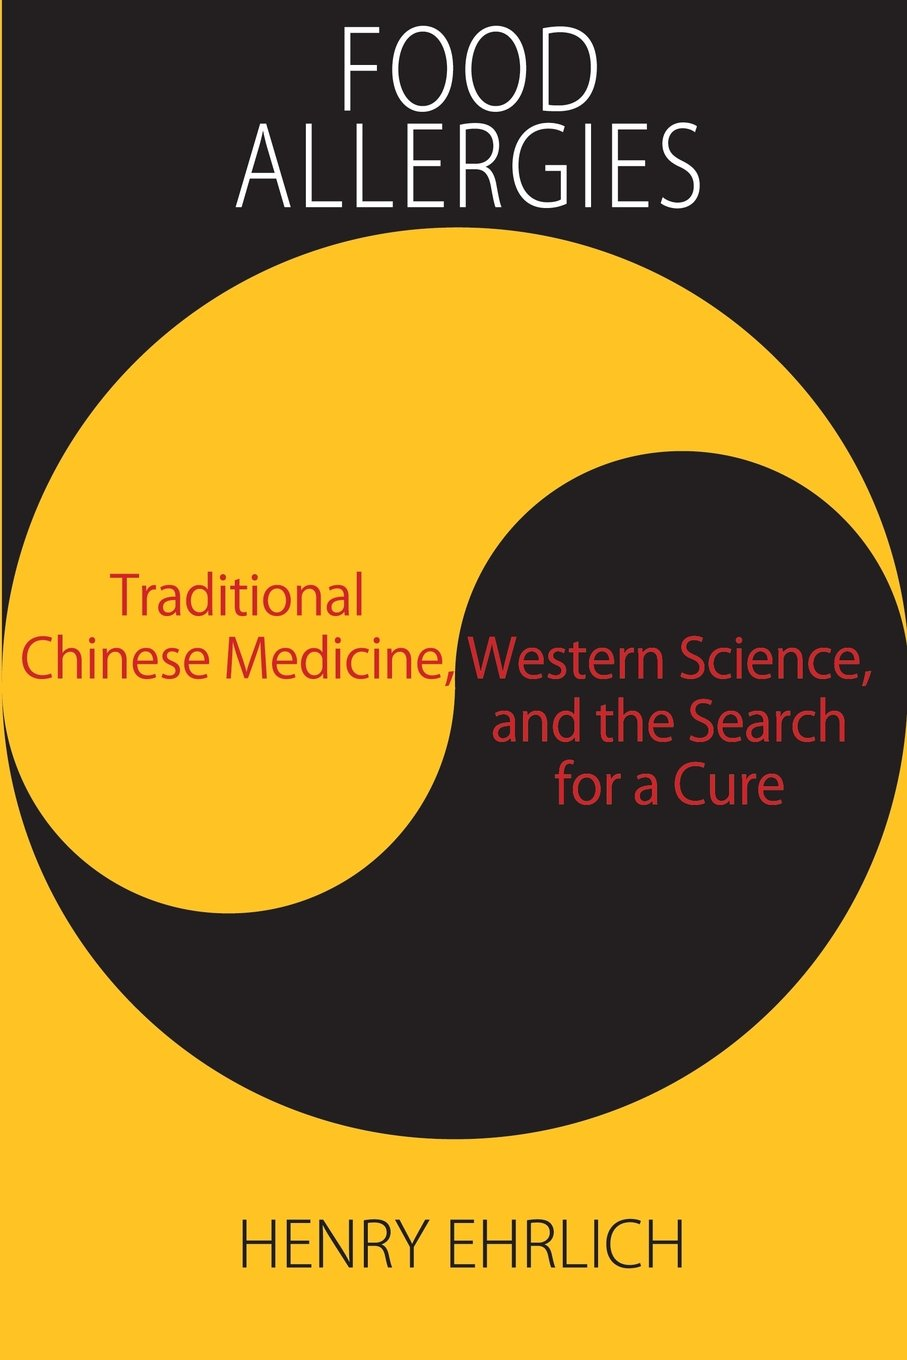 Download Food Allergies: Traditional Chinese Medicine, Western Science, and the Search for a Cure ebook